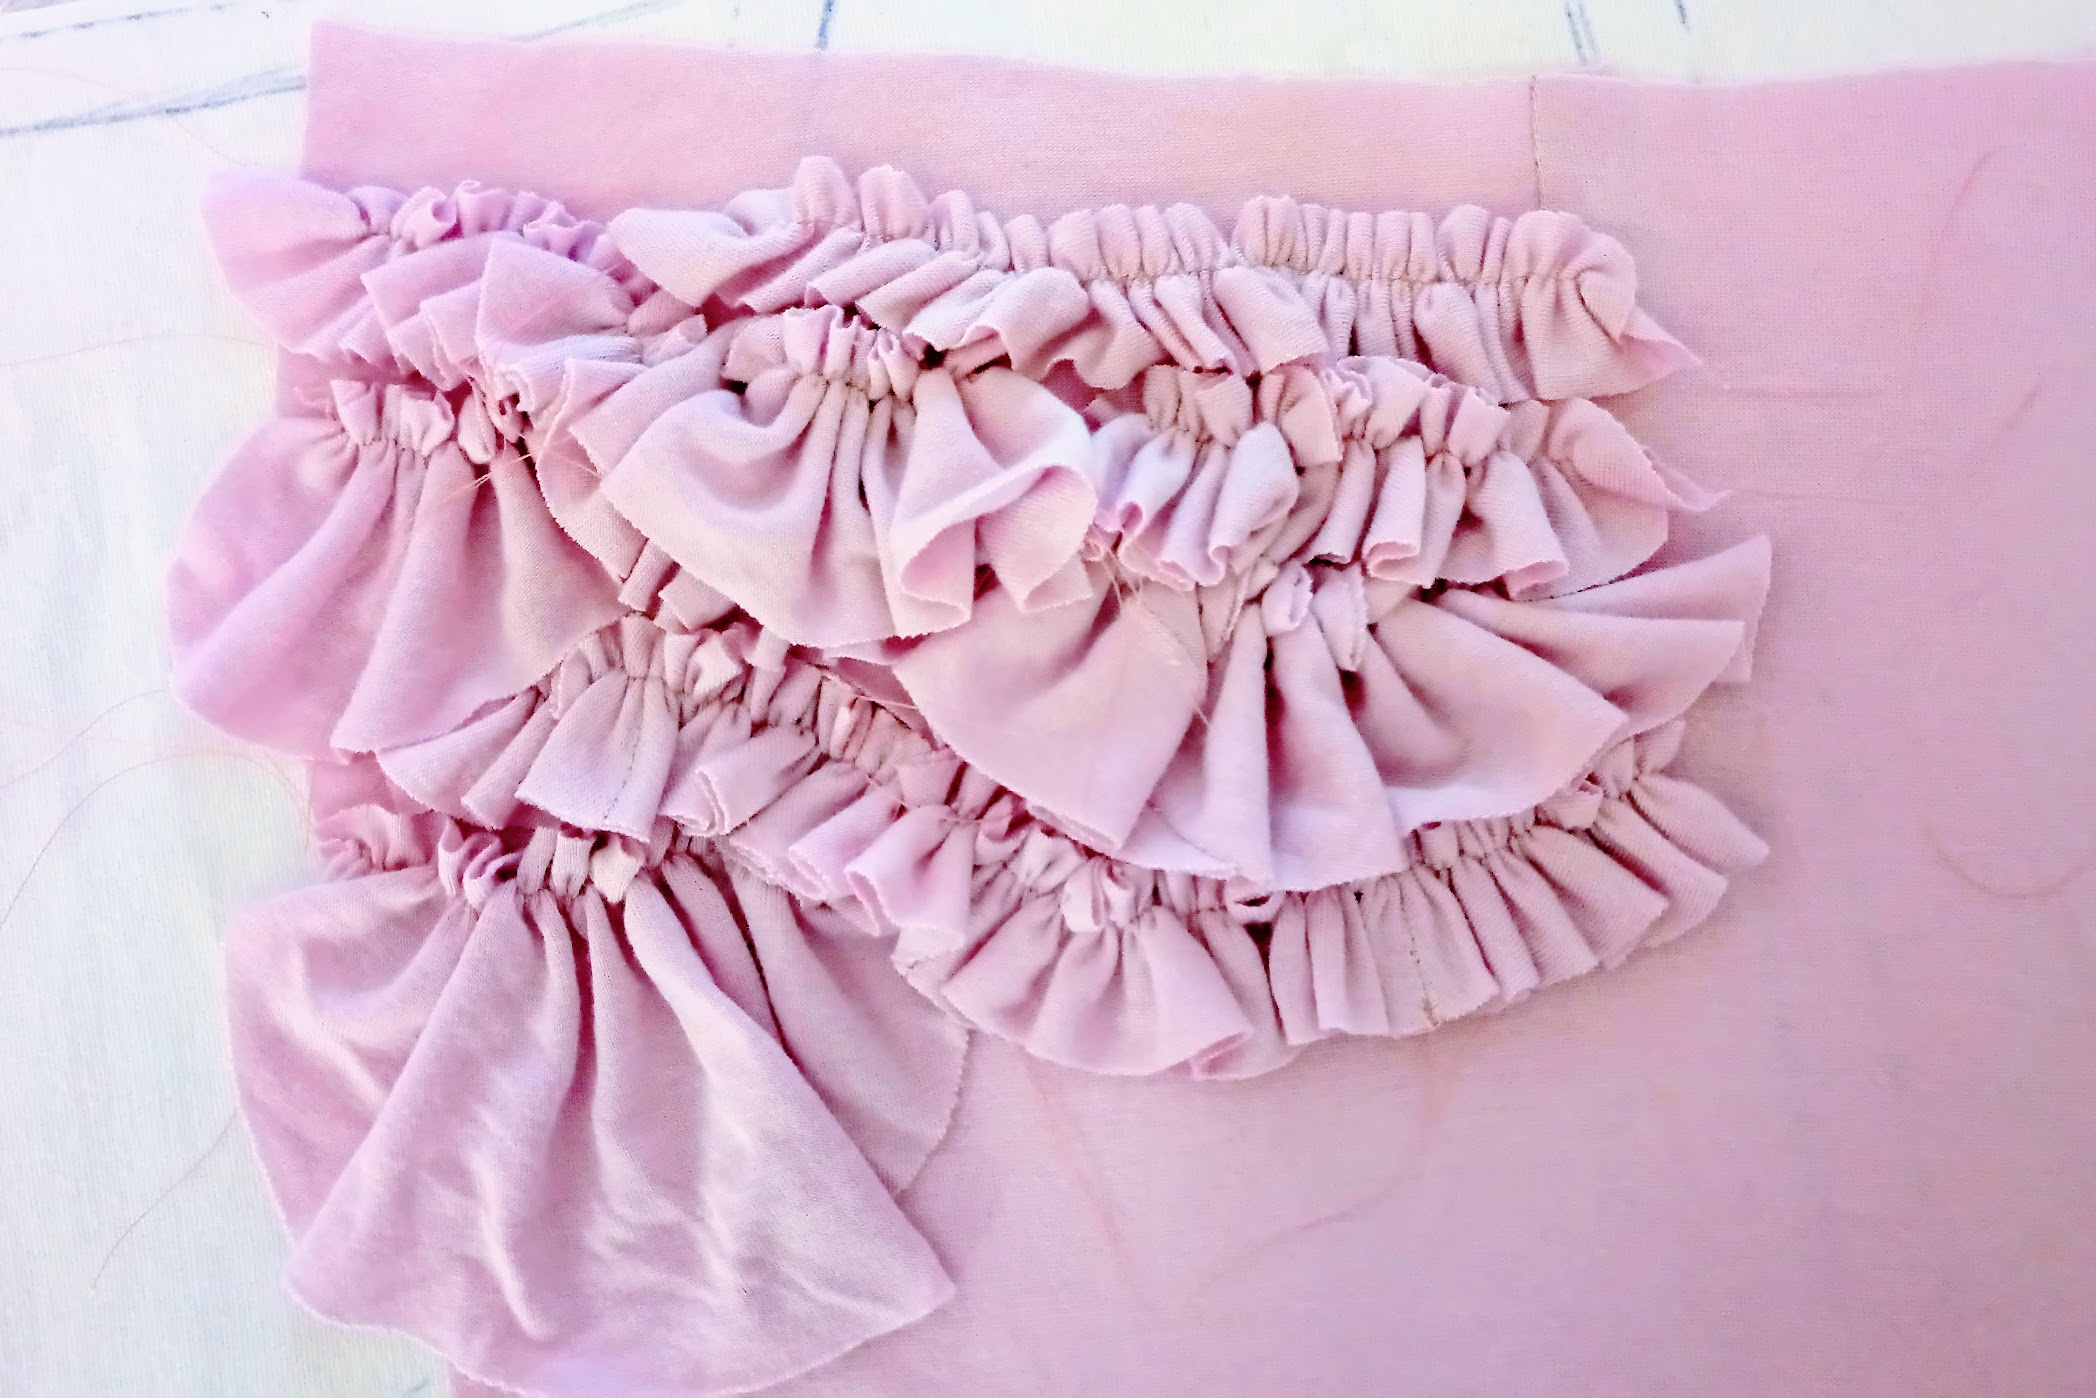 Pink sleepwear set - DIY Fashion project | fafafoom.com